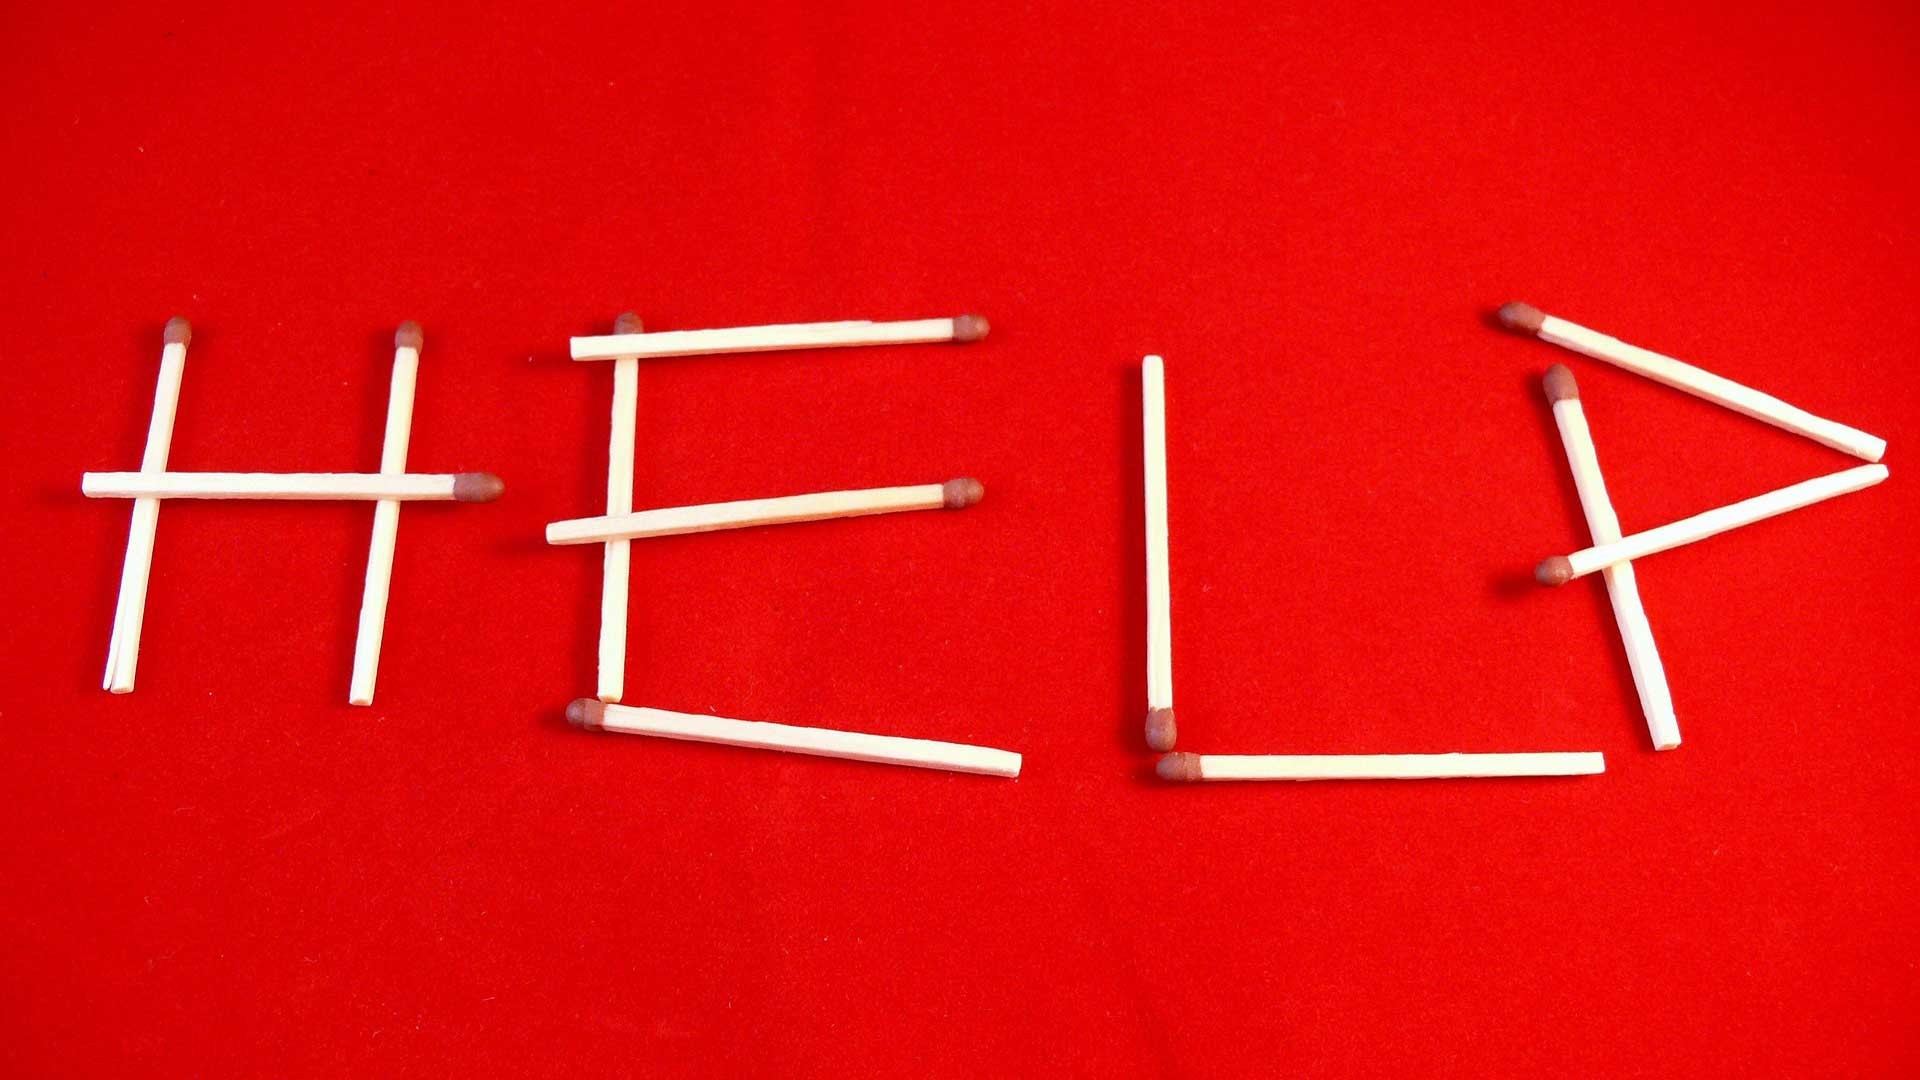 Word help written with matchsticks on a red background